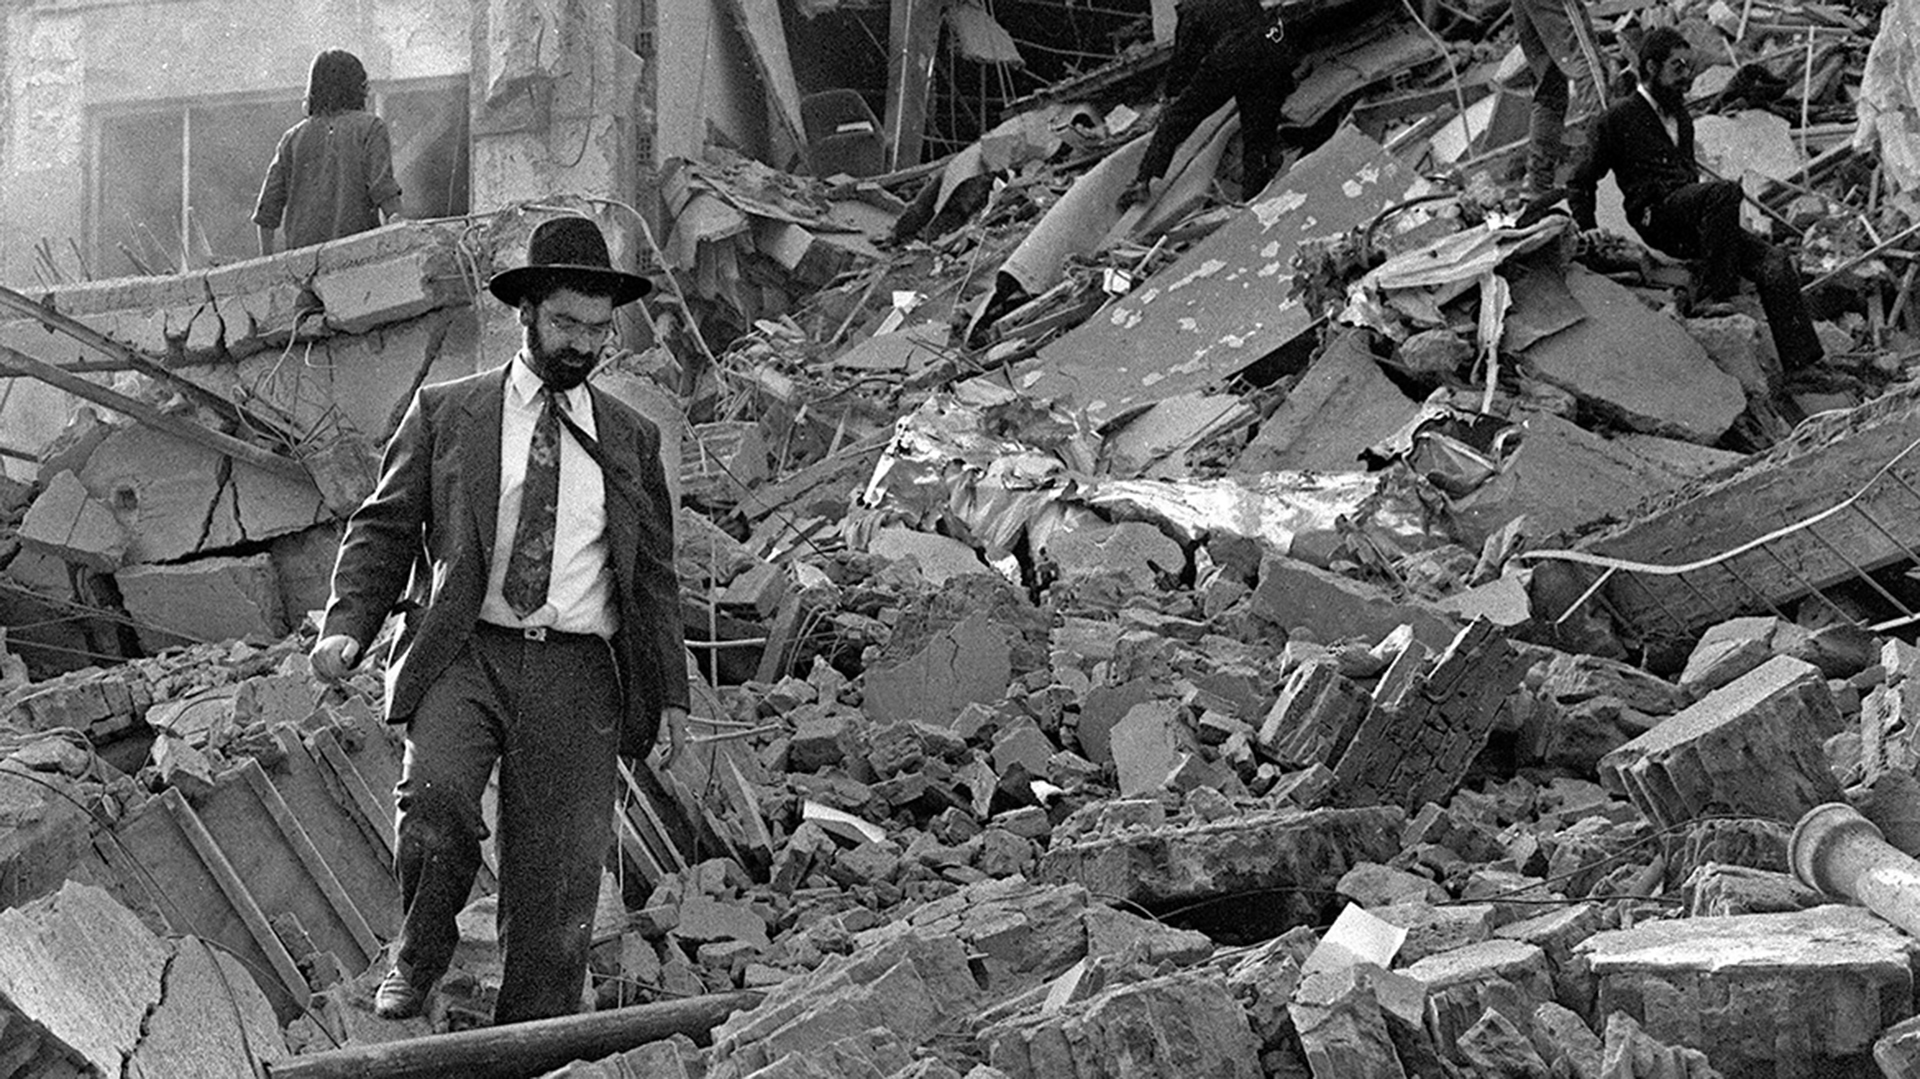 (FILE) A man walks over the rubble left after a bomb exploded at the Argentinian Israeli Mutual Association (AMIA in Spanish) in Buenos Aires, 18 July 1994. Argentinian prosecutors formally charged Iran and the Shiite militia Hezbollah 25 October 2006 in the 1994 bombing of the Argentine Jewish Mutual Associationa in Argentina, which killed 85 people and injured 300. Prosecutors called for the arrest of top Iranian authorities at the time, including then-president Akbar Hashemi Rafsanjani. Next July 18 marks the 20th anniversary of the attack. AFP PHOTO/ALI BURAFI